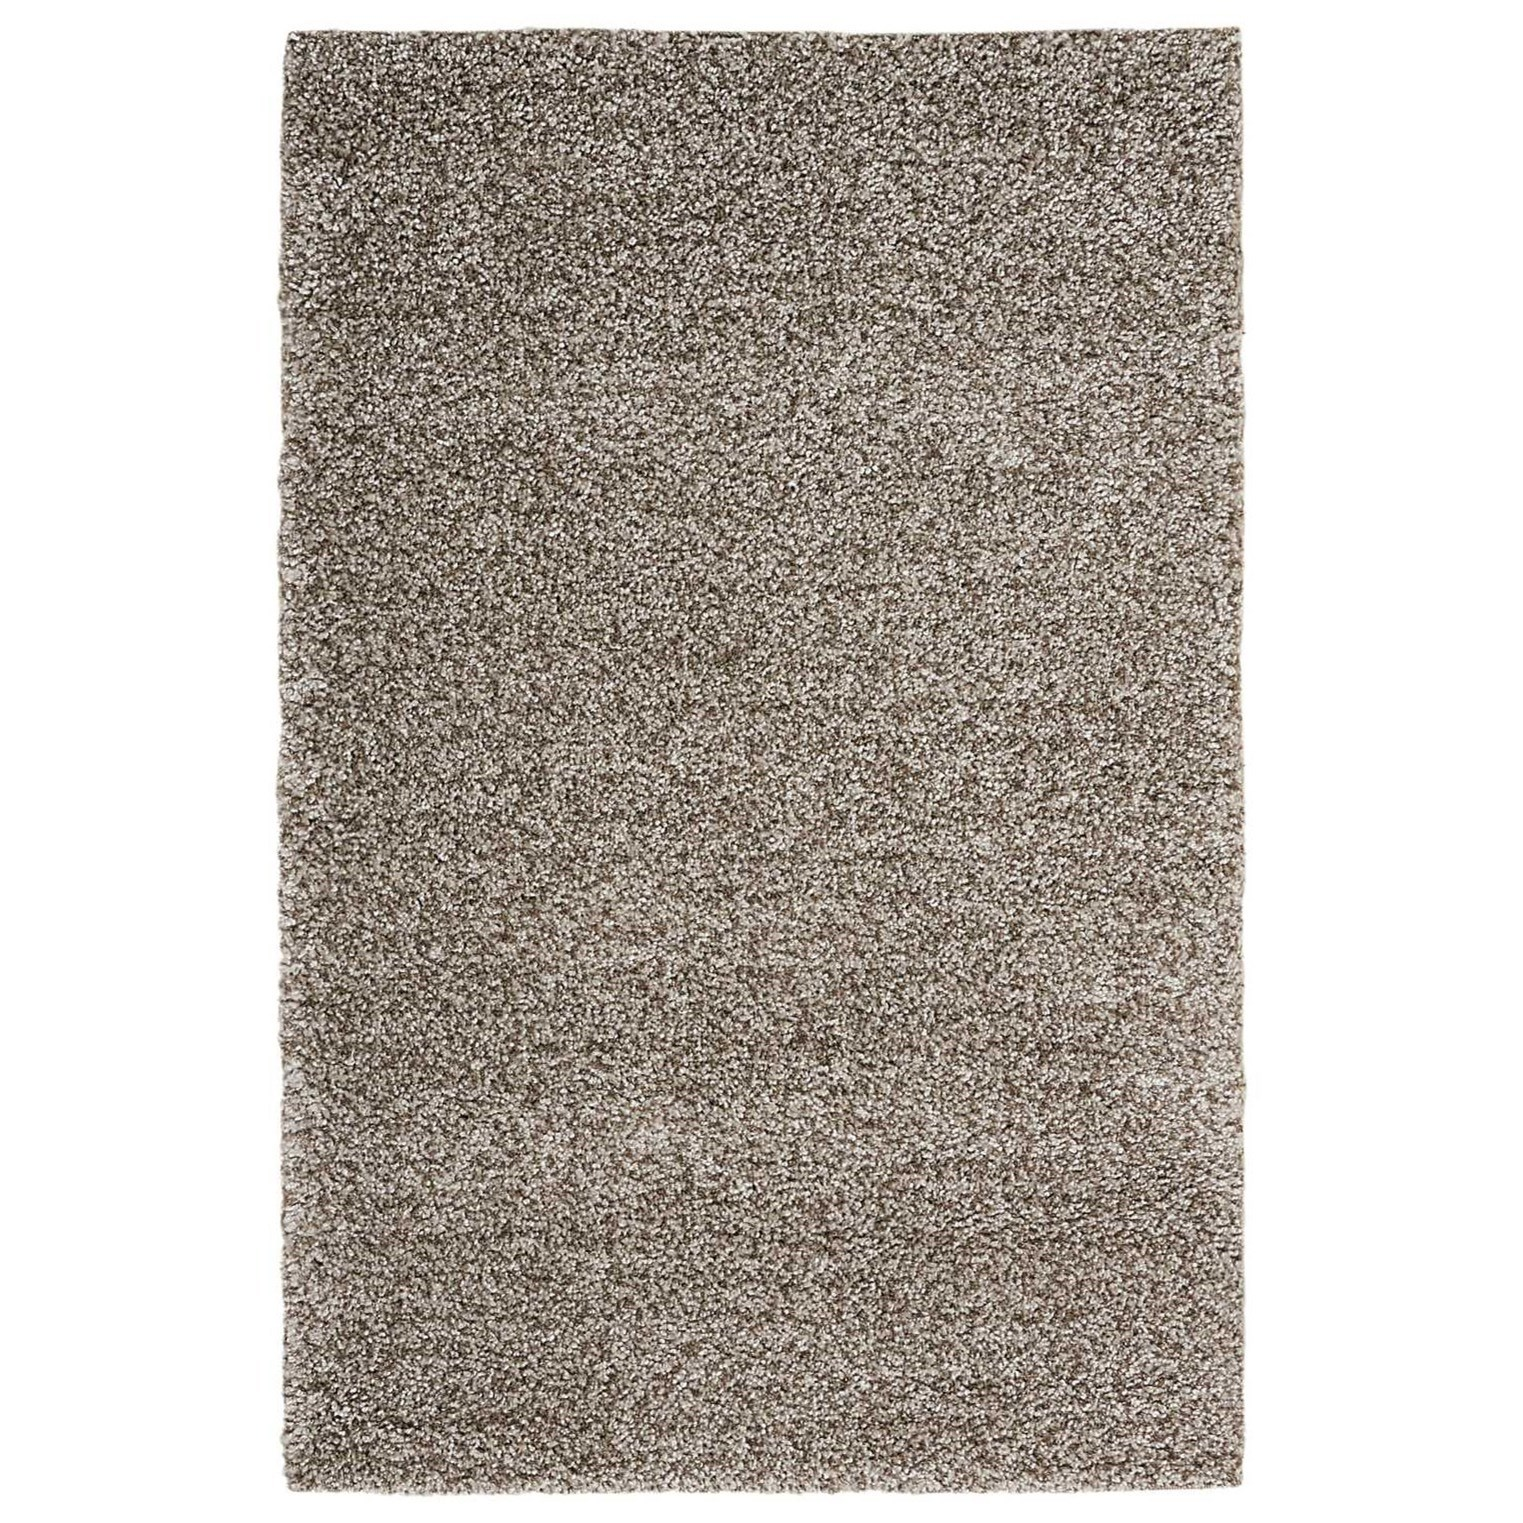 """Brisbane 8'2"""" x 10' Stone Rectangle Rug by Nourison at Home Collections Furniture"""